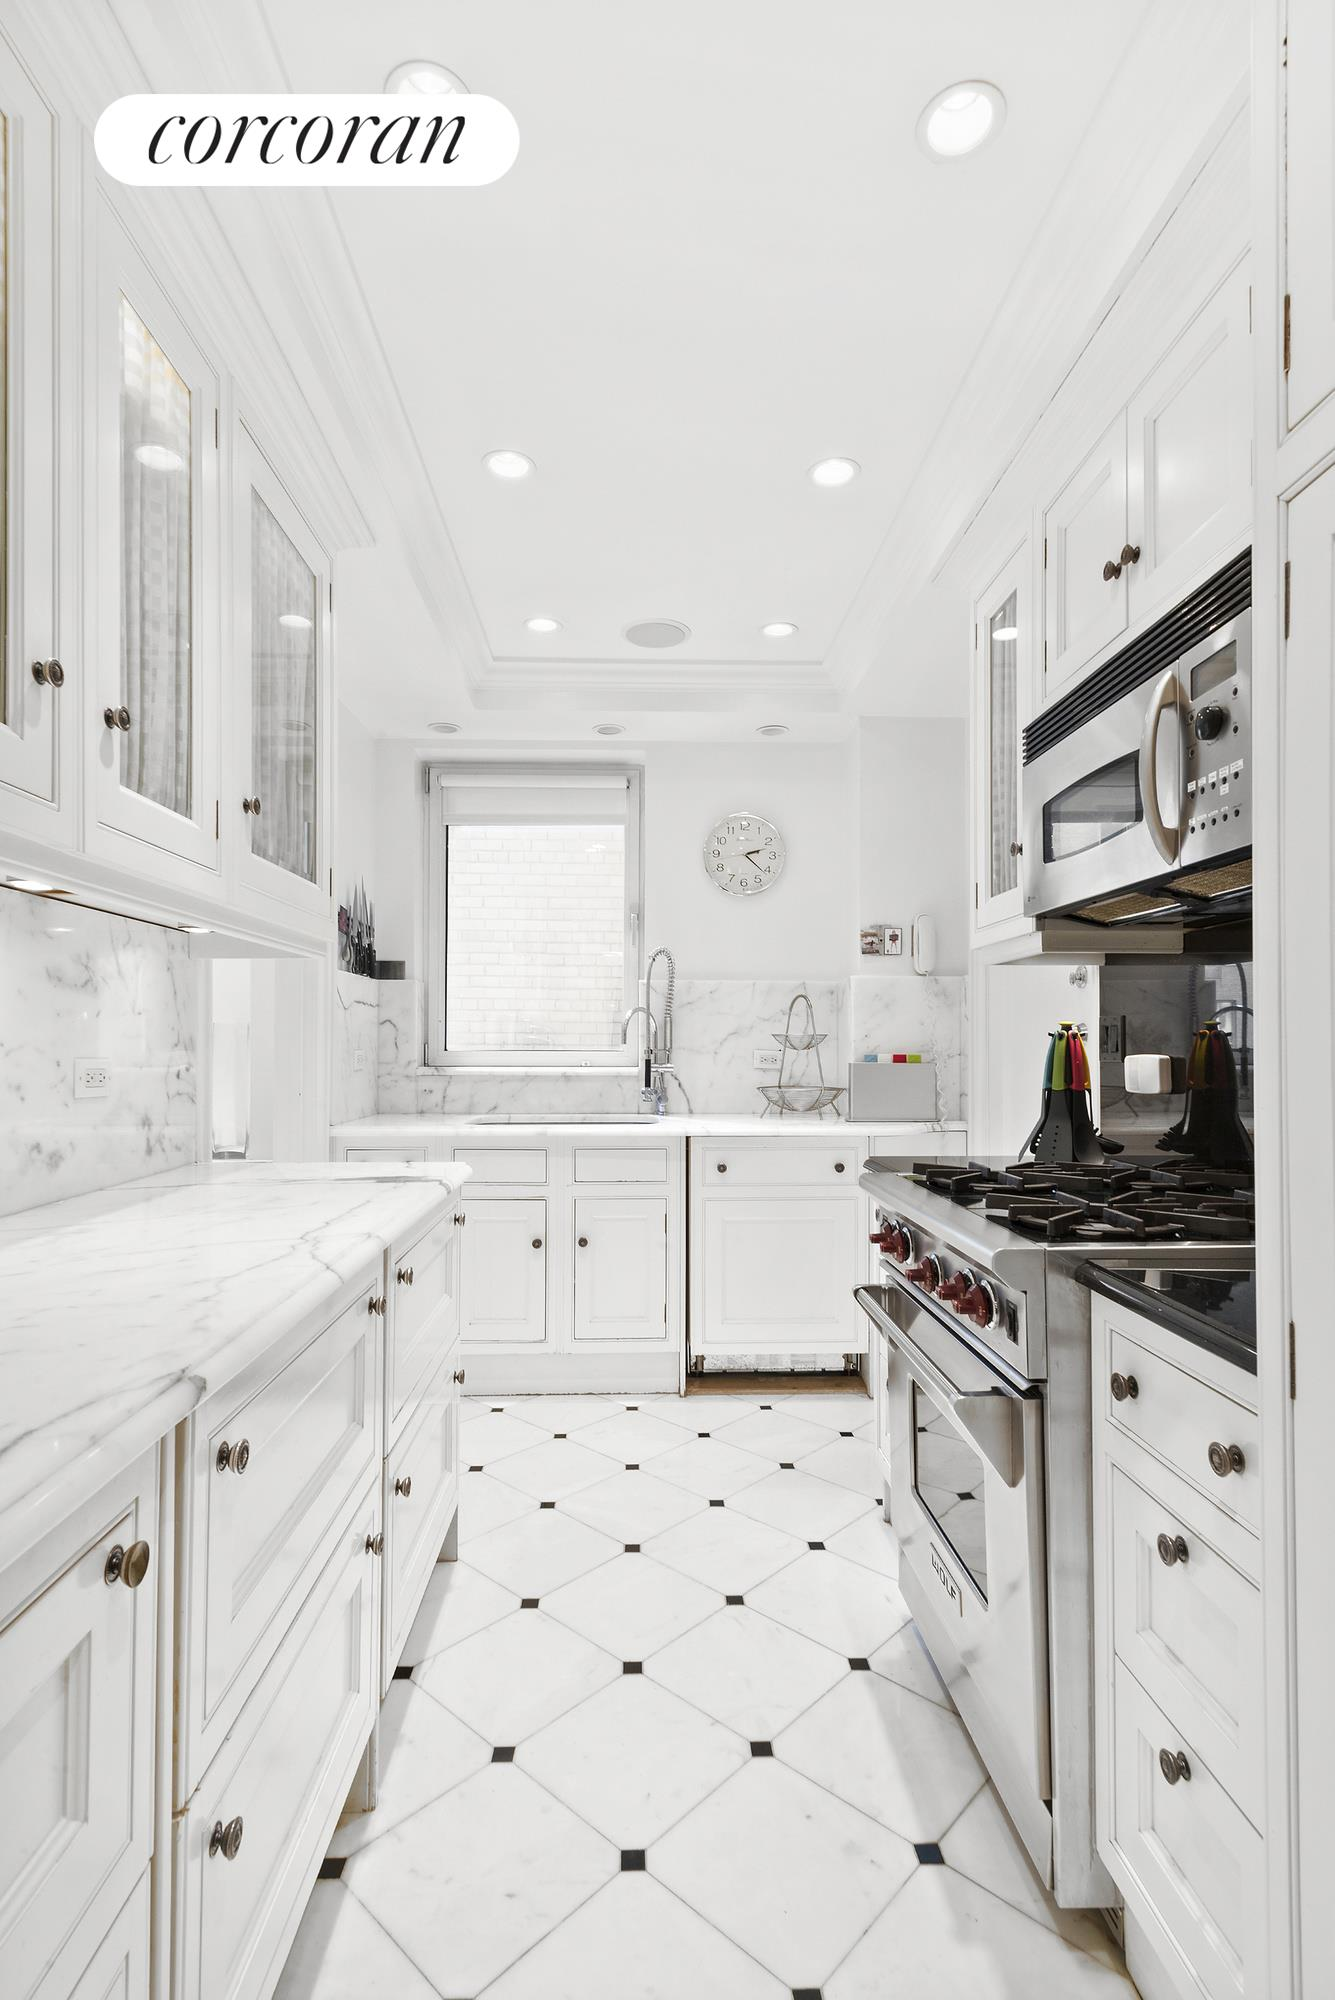 875 Fifth Avenue, 7D, 1 Renovated Chef's Kitchen